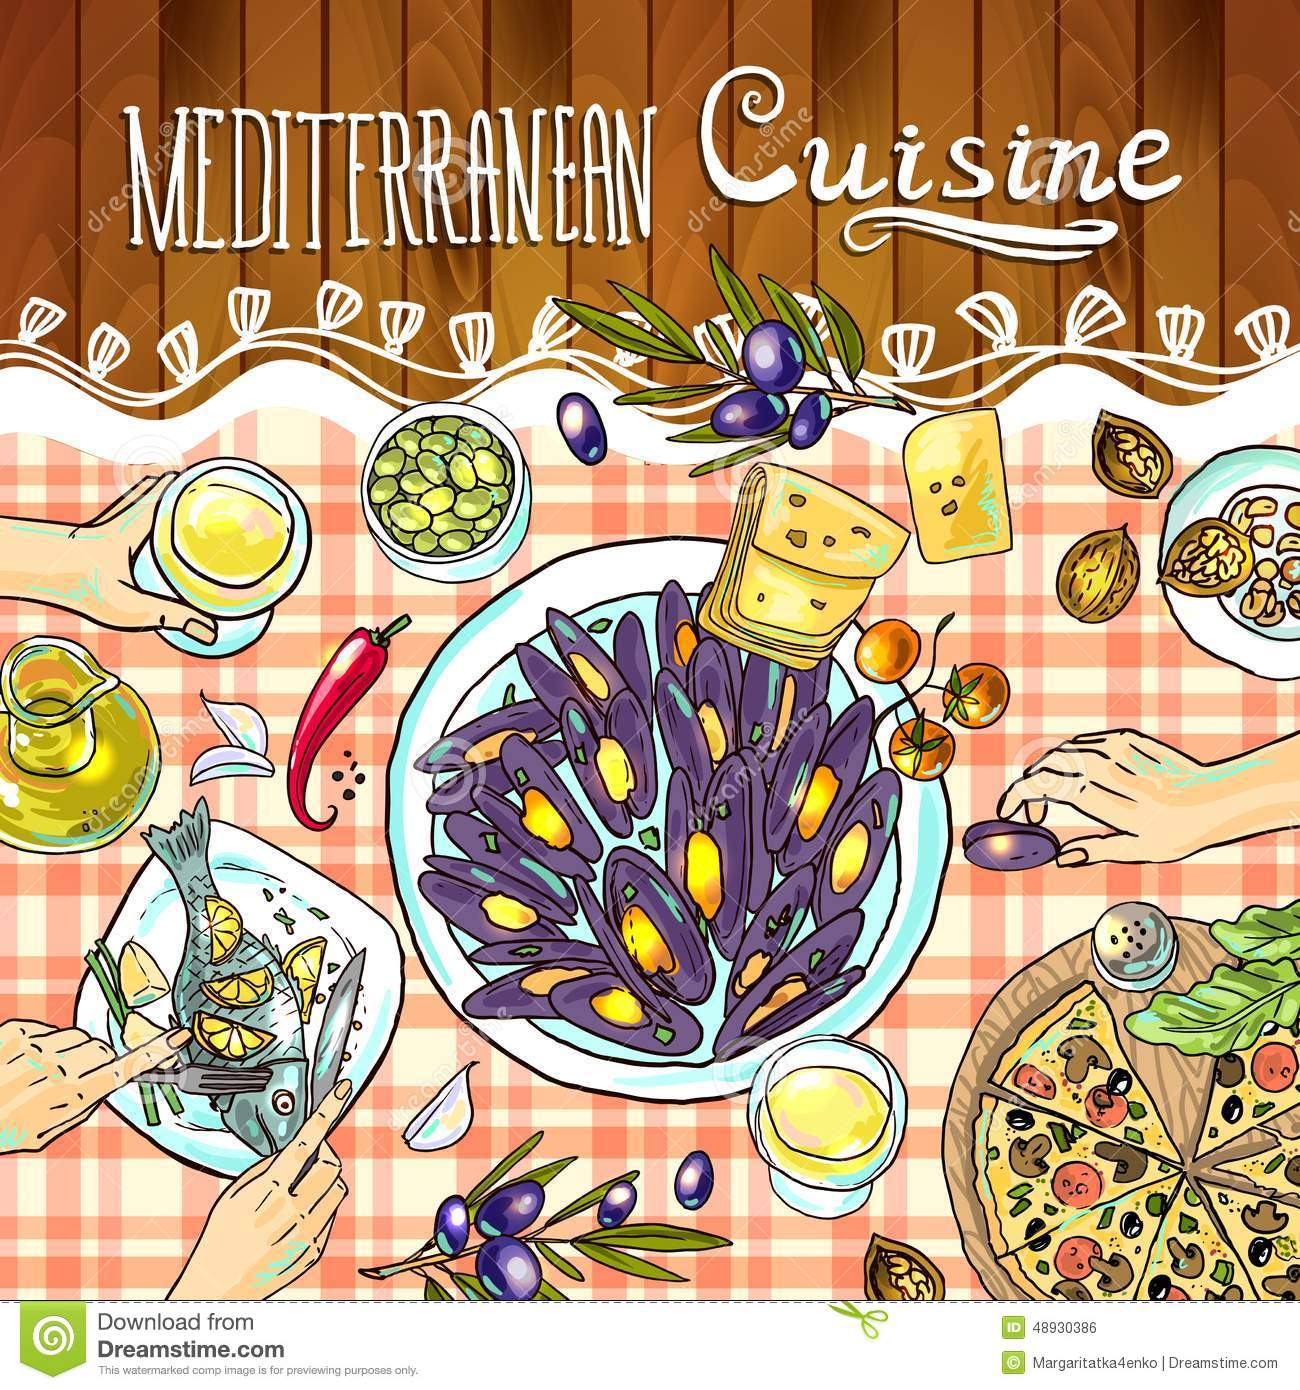 Mediterranean Cuisine Stock Vector Illustration Of Abstract 48930386